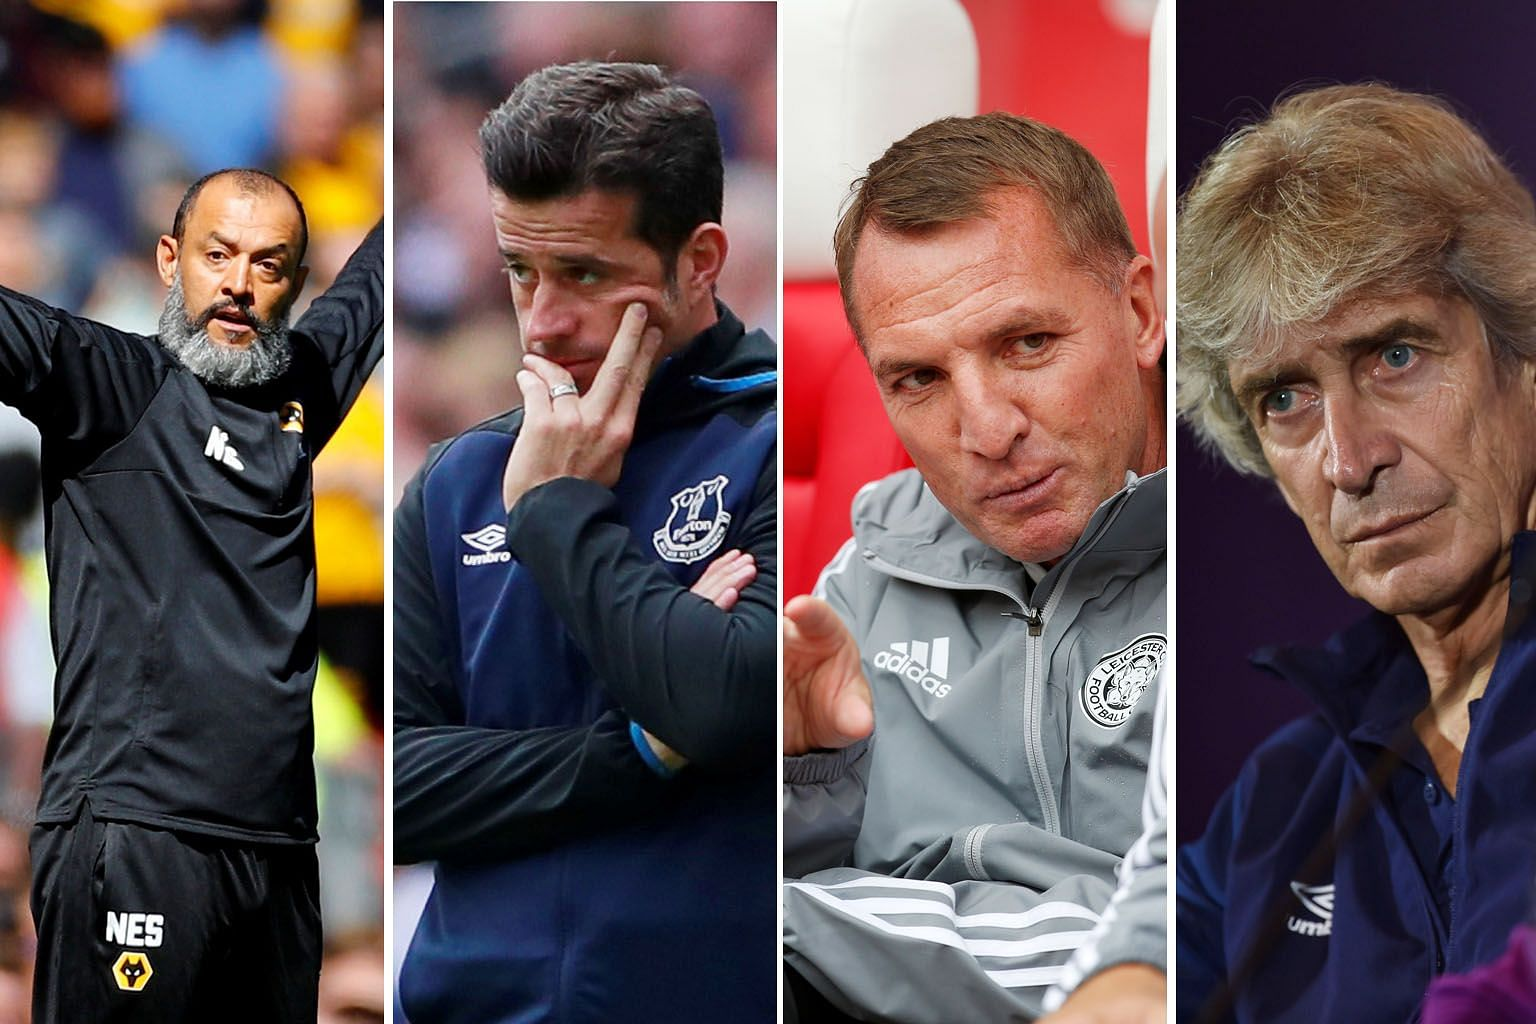 Clockwise from above: Wolves manager Nuno Espirito Santo, Everton's Marco Silva, Leicester City's Brendan Rodgers and West Ham's Manuel Pellegrini will lead their teams into the new Premier League season. Their involvement in an active summer transfe